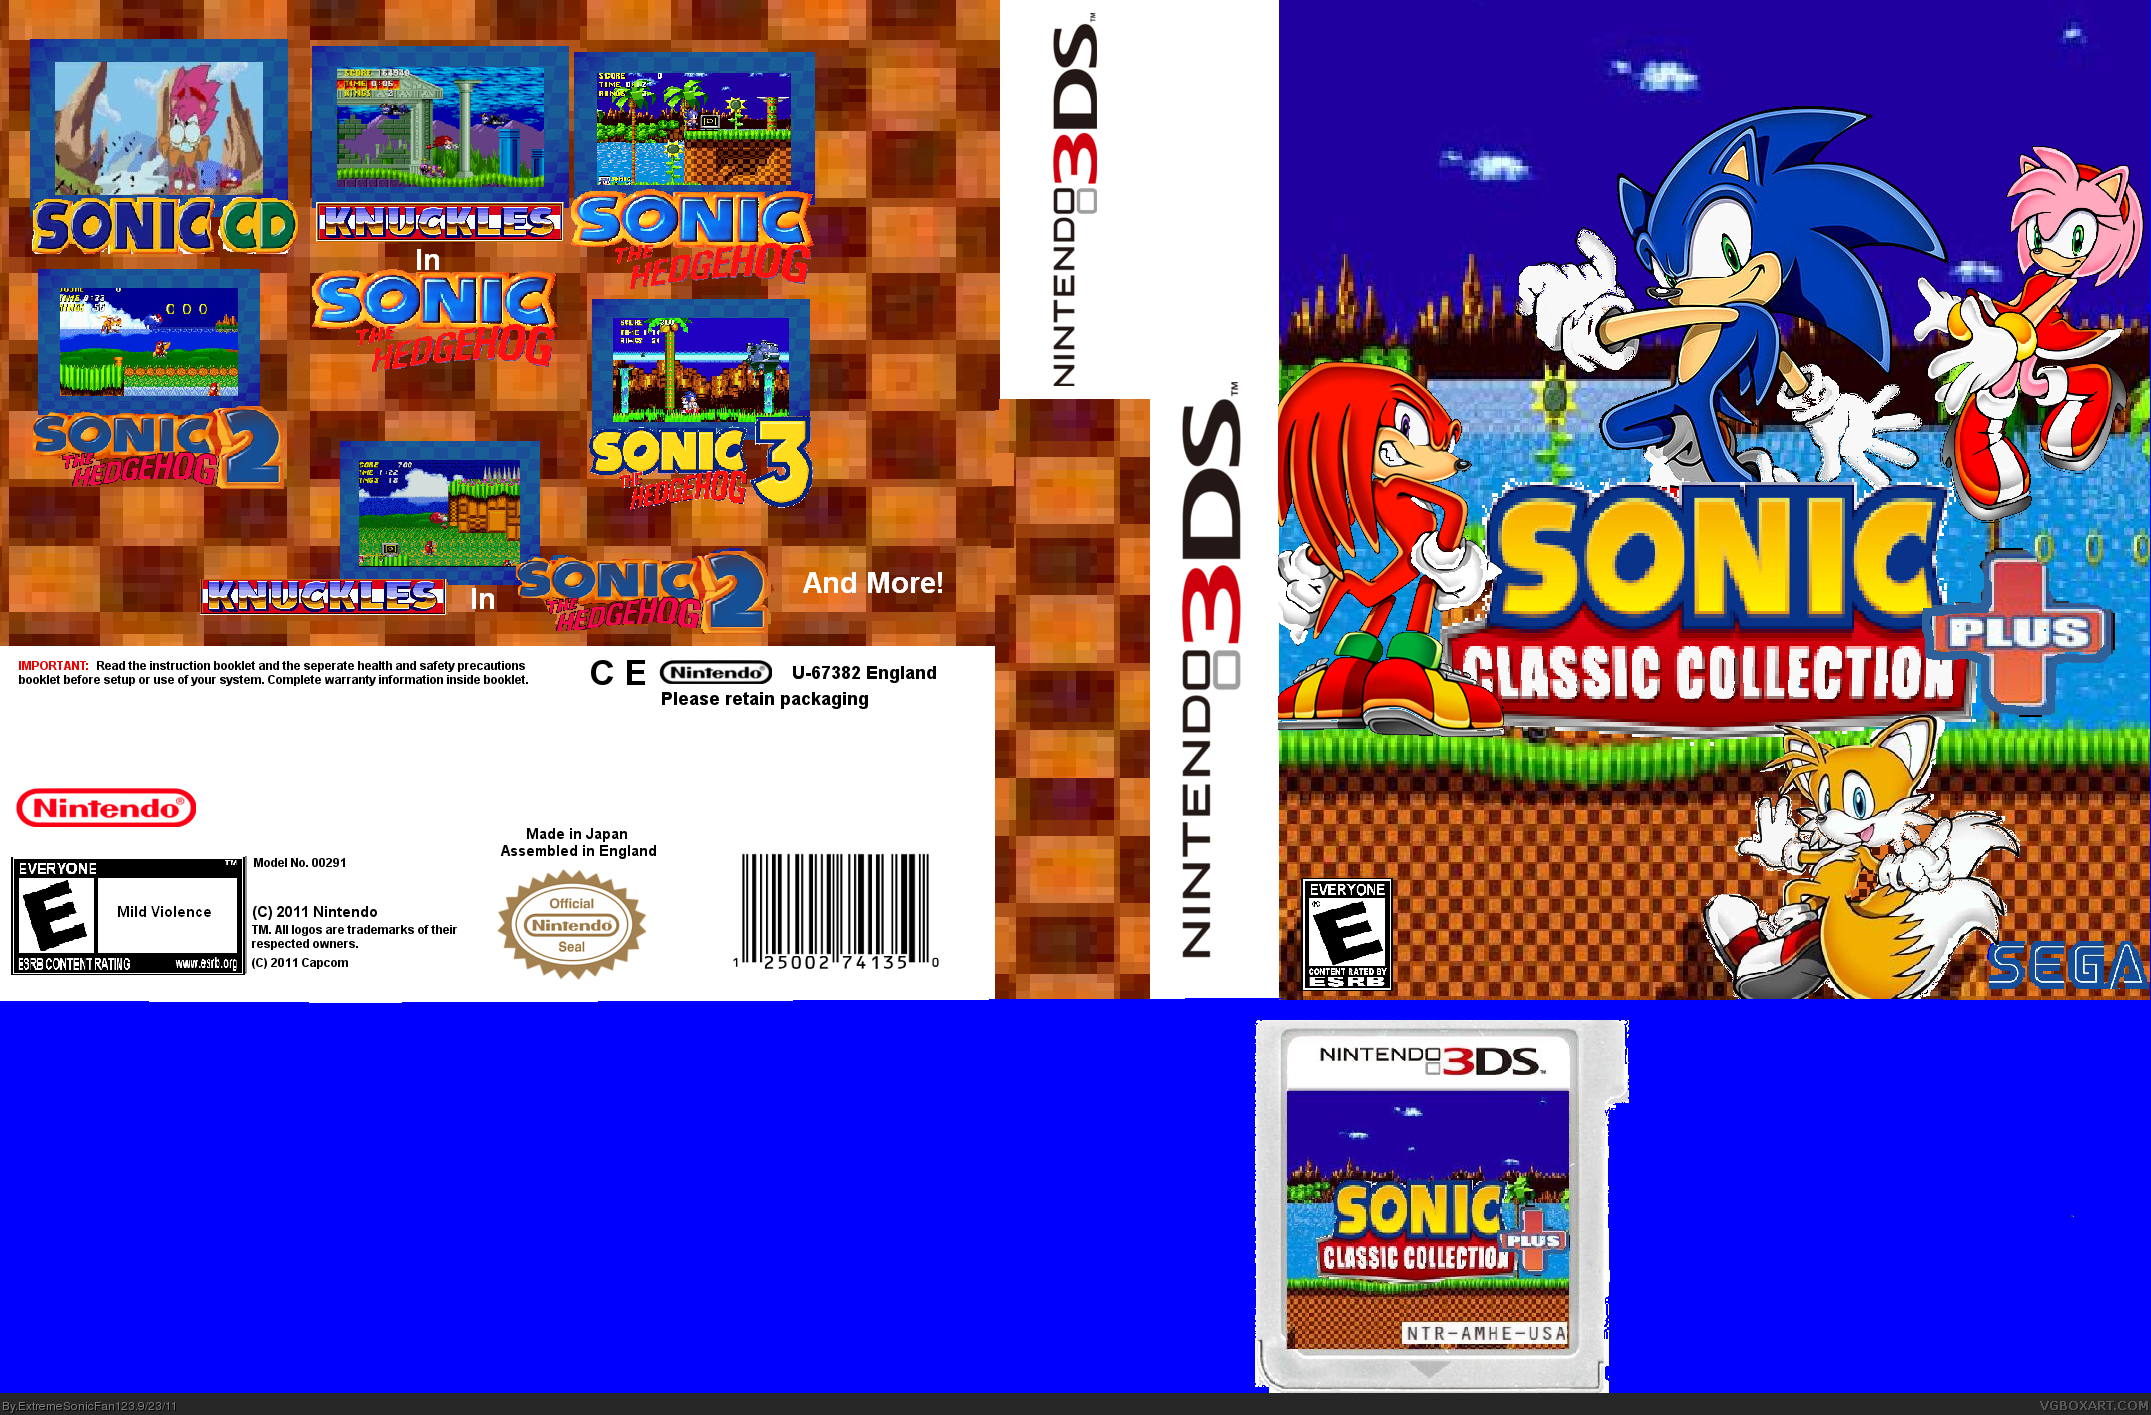 Sonic Classic Collection Plus box cover